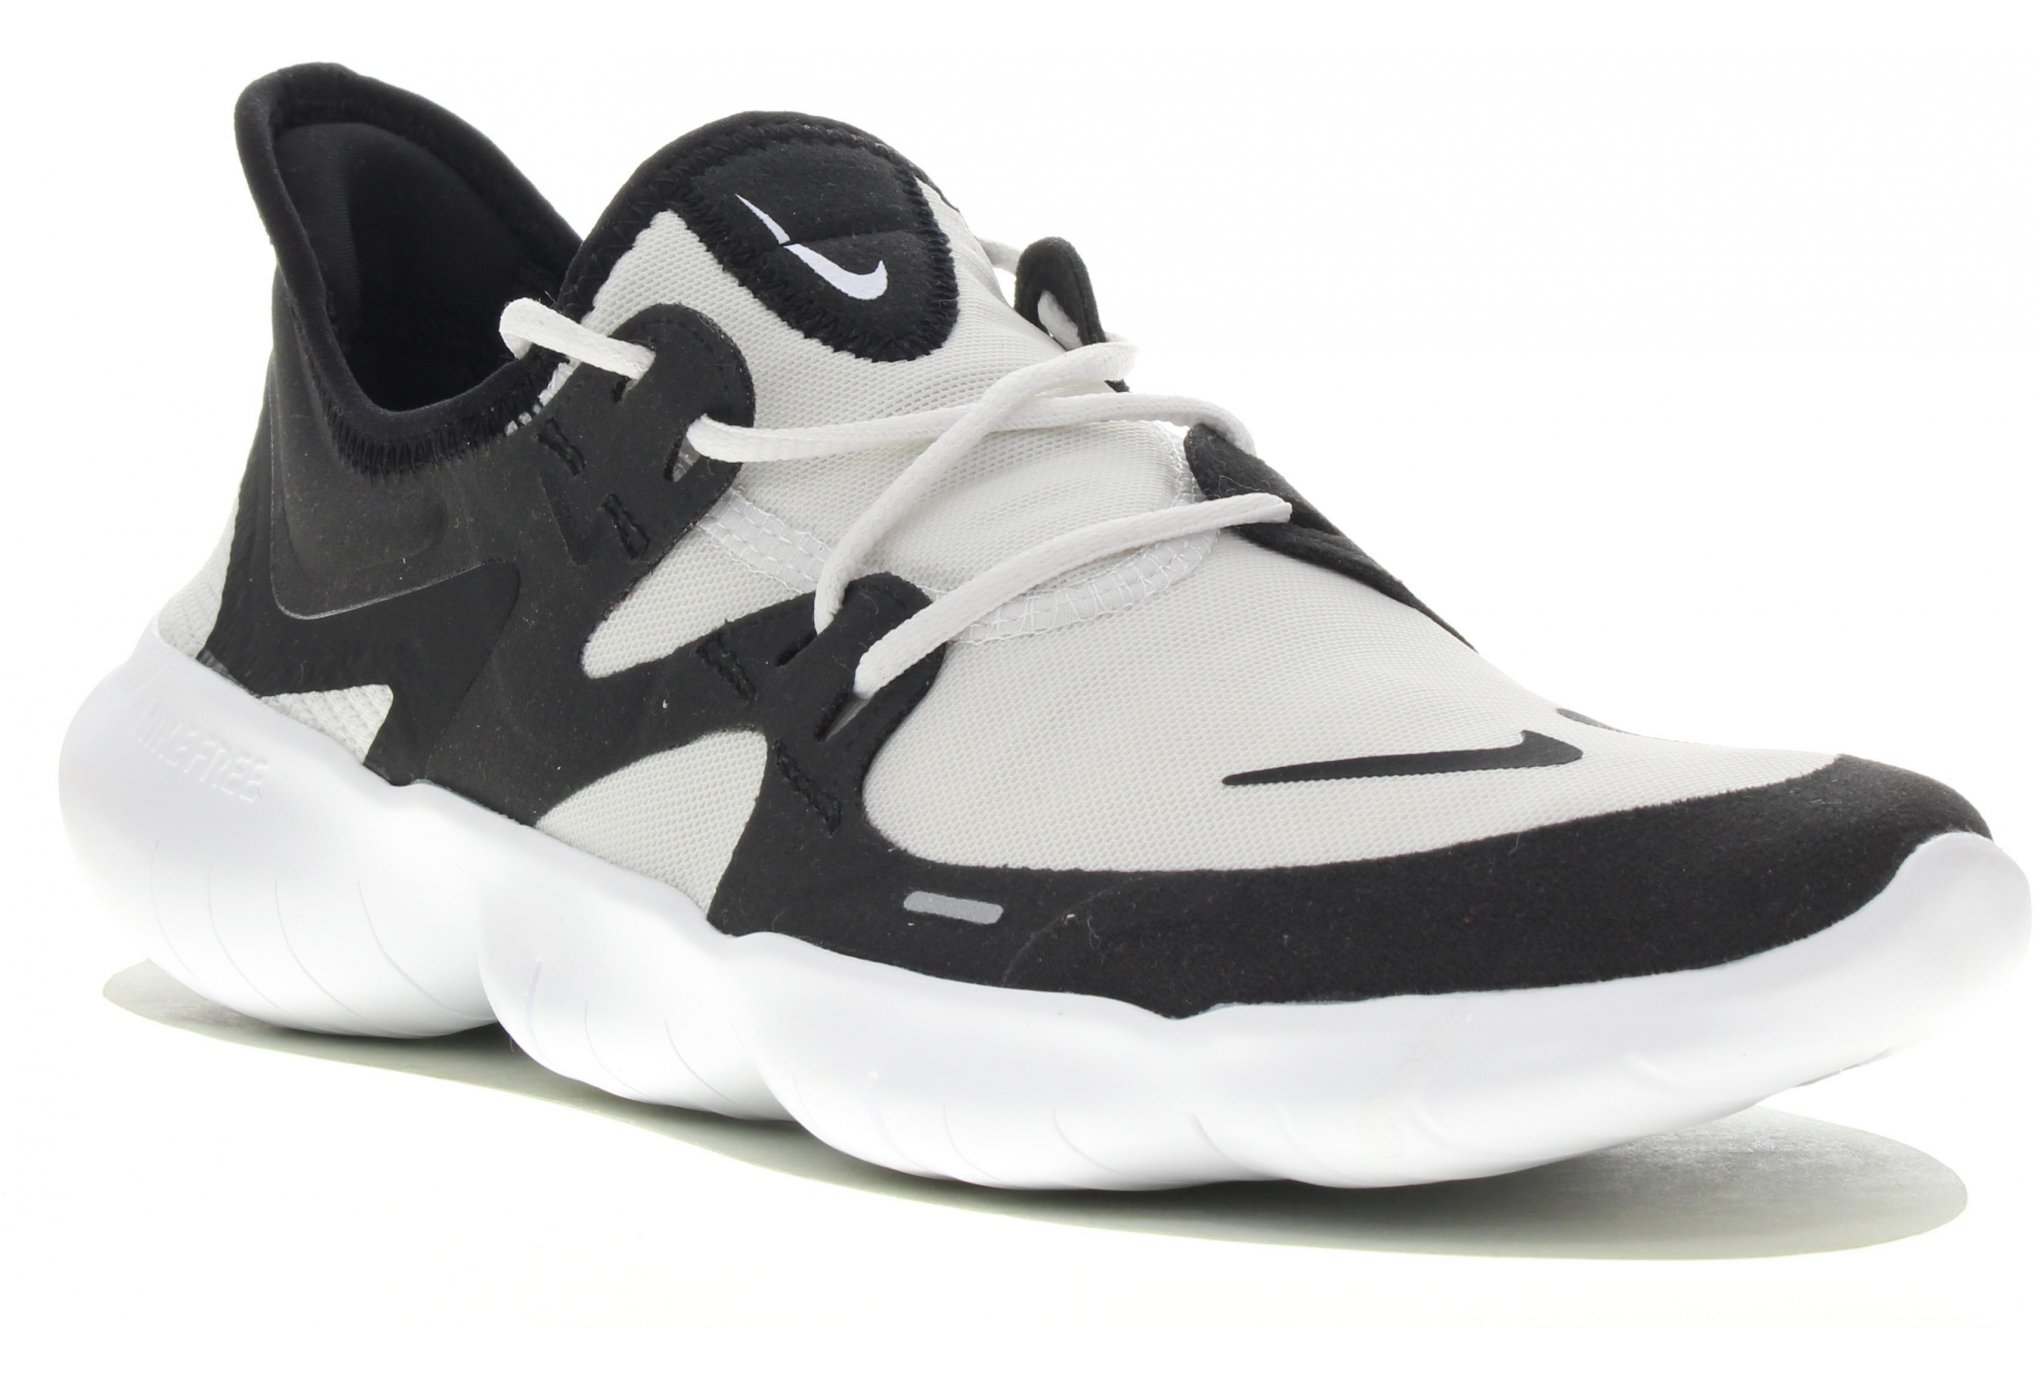 Nike Free RN 5.0 W Chaussures running femme